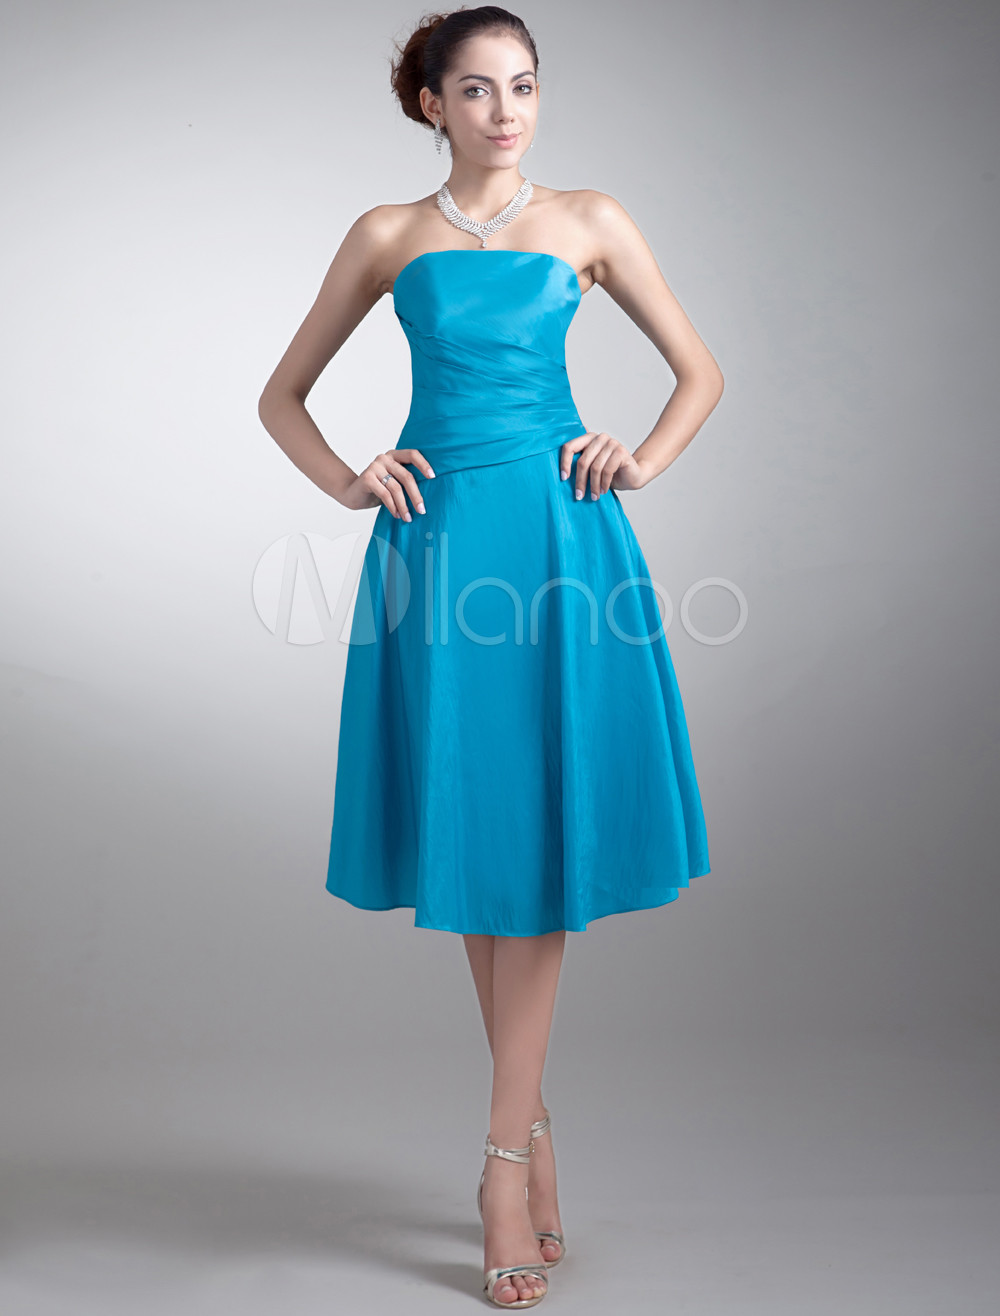 Line Blue Taffeta Strapless Tea Length Bridesmaid Dress For Wedding